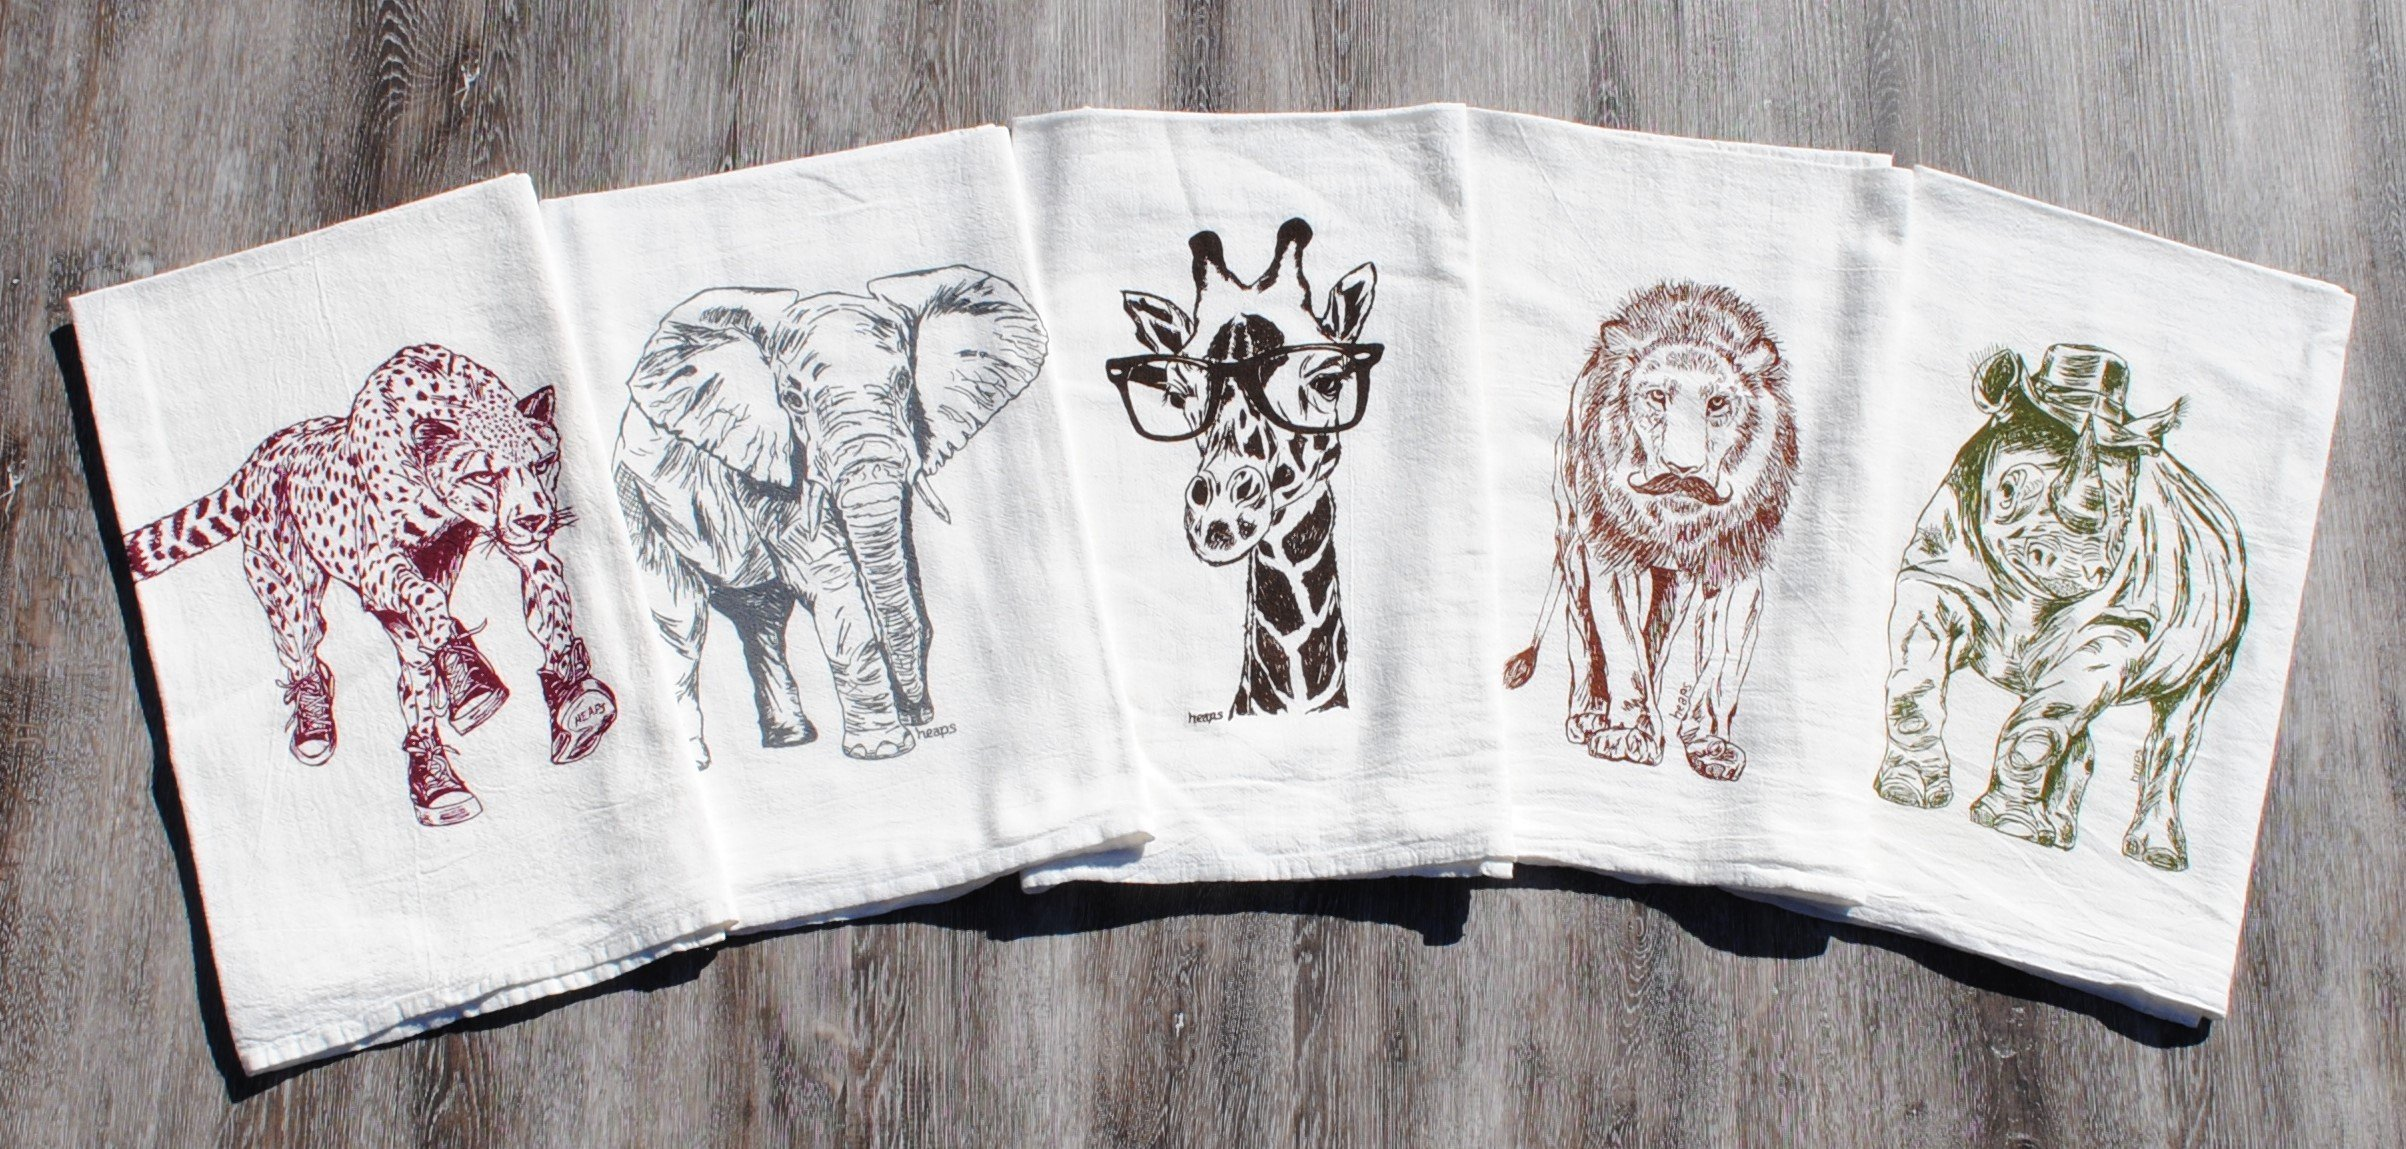 Kitchen Tea Towel Set of 5 - 100% Cotton Flour Sack Material - 26'' x 25'' - African Animals by Heaps Handworks